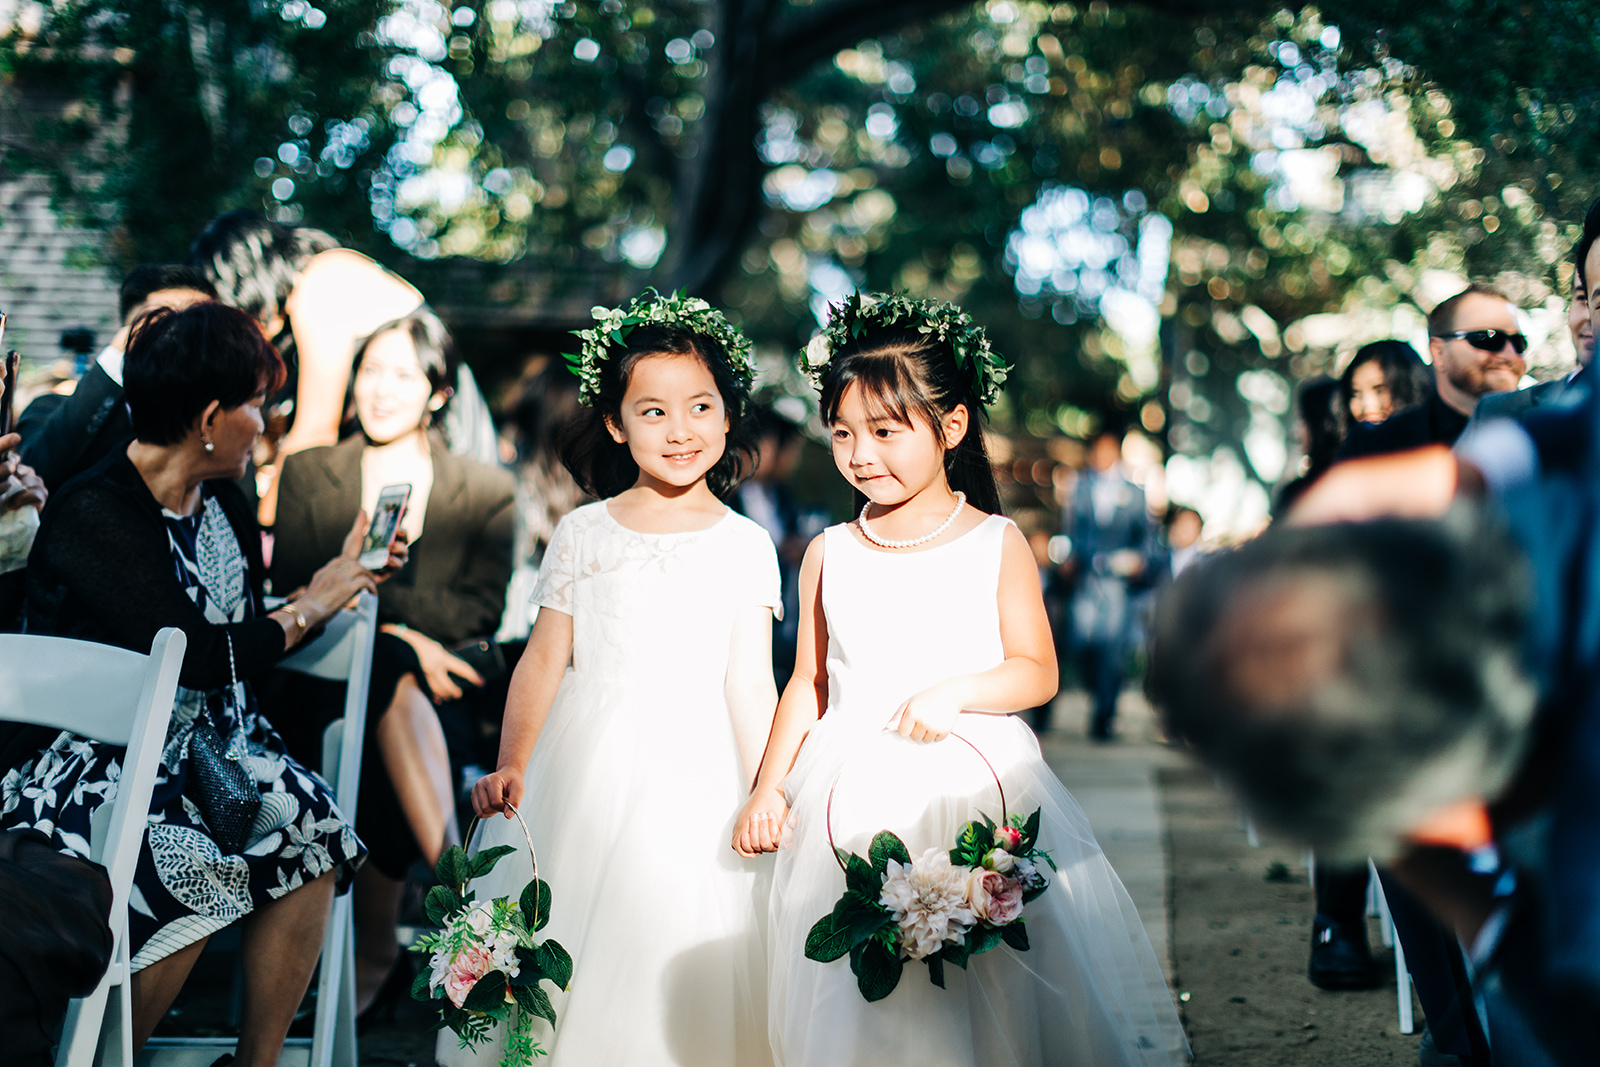 Los-Altos-History-Museum-Wedding_Orange-County-Wedding-Photographer_Clarisse-Rae-Photo-Video_55